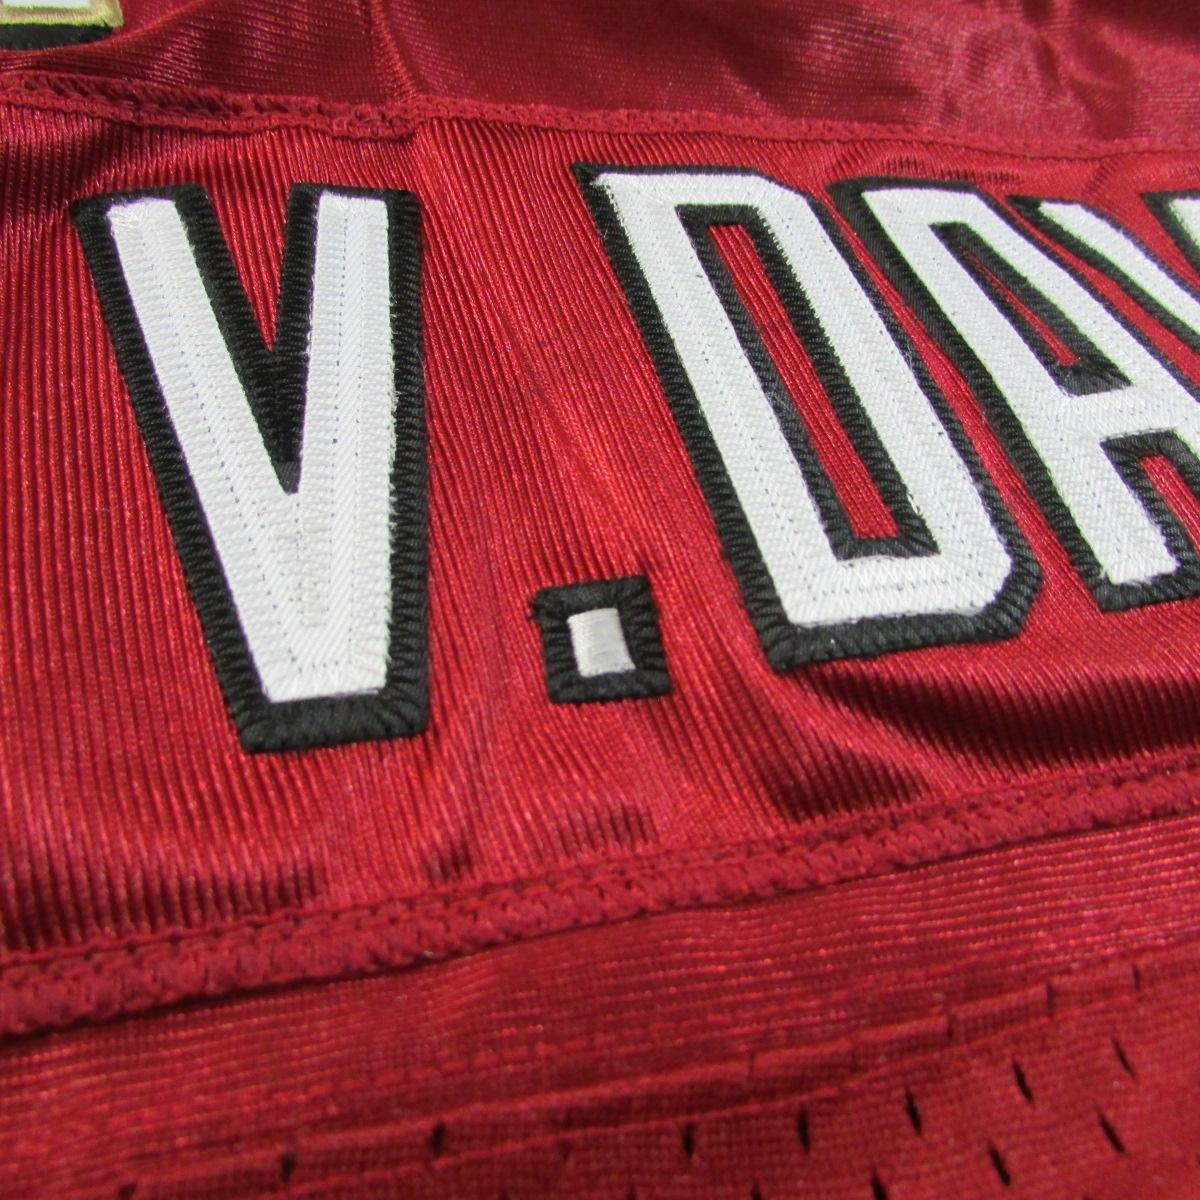 San Francisco 49ers 60th Anniversary Vernon Davis Stitched Jersey Rebook - Red